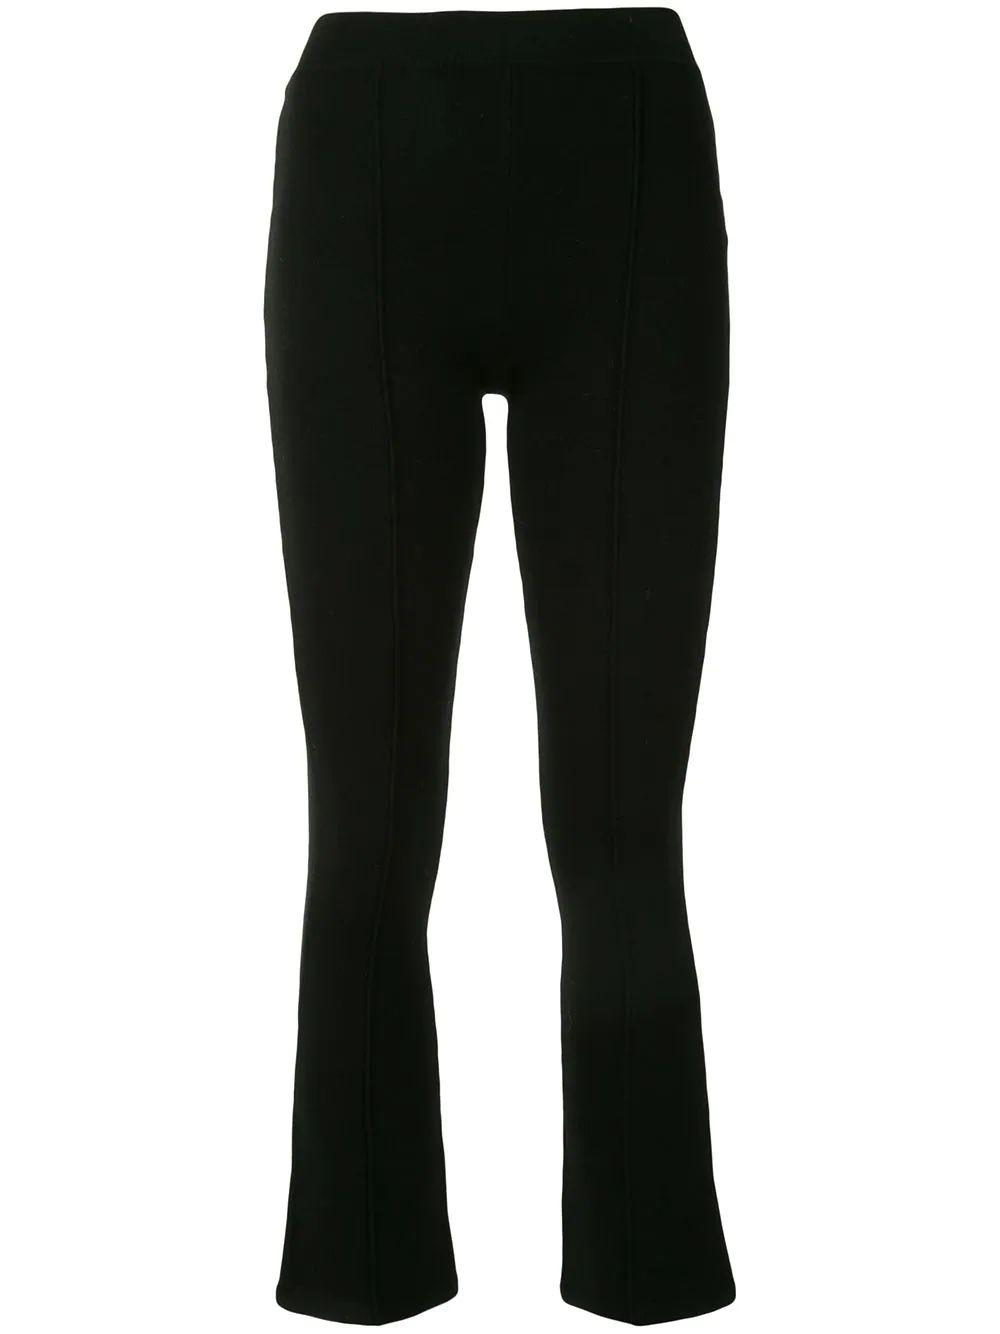 Brianna Compact Knit Cropped Pant Item # 520-4000-K